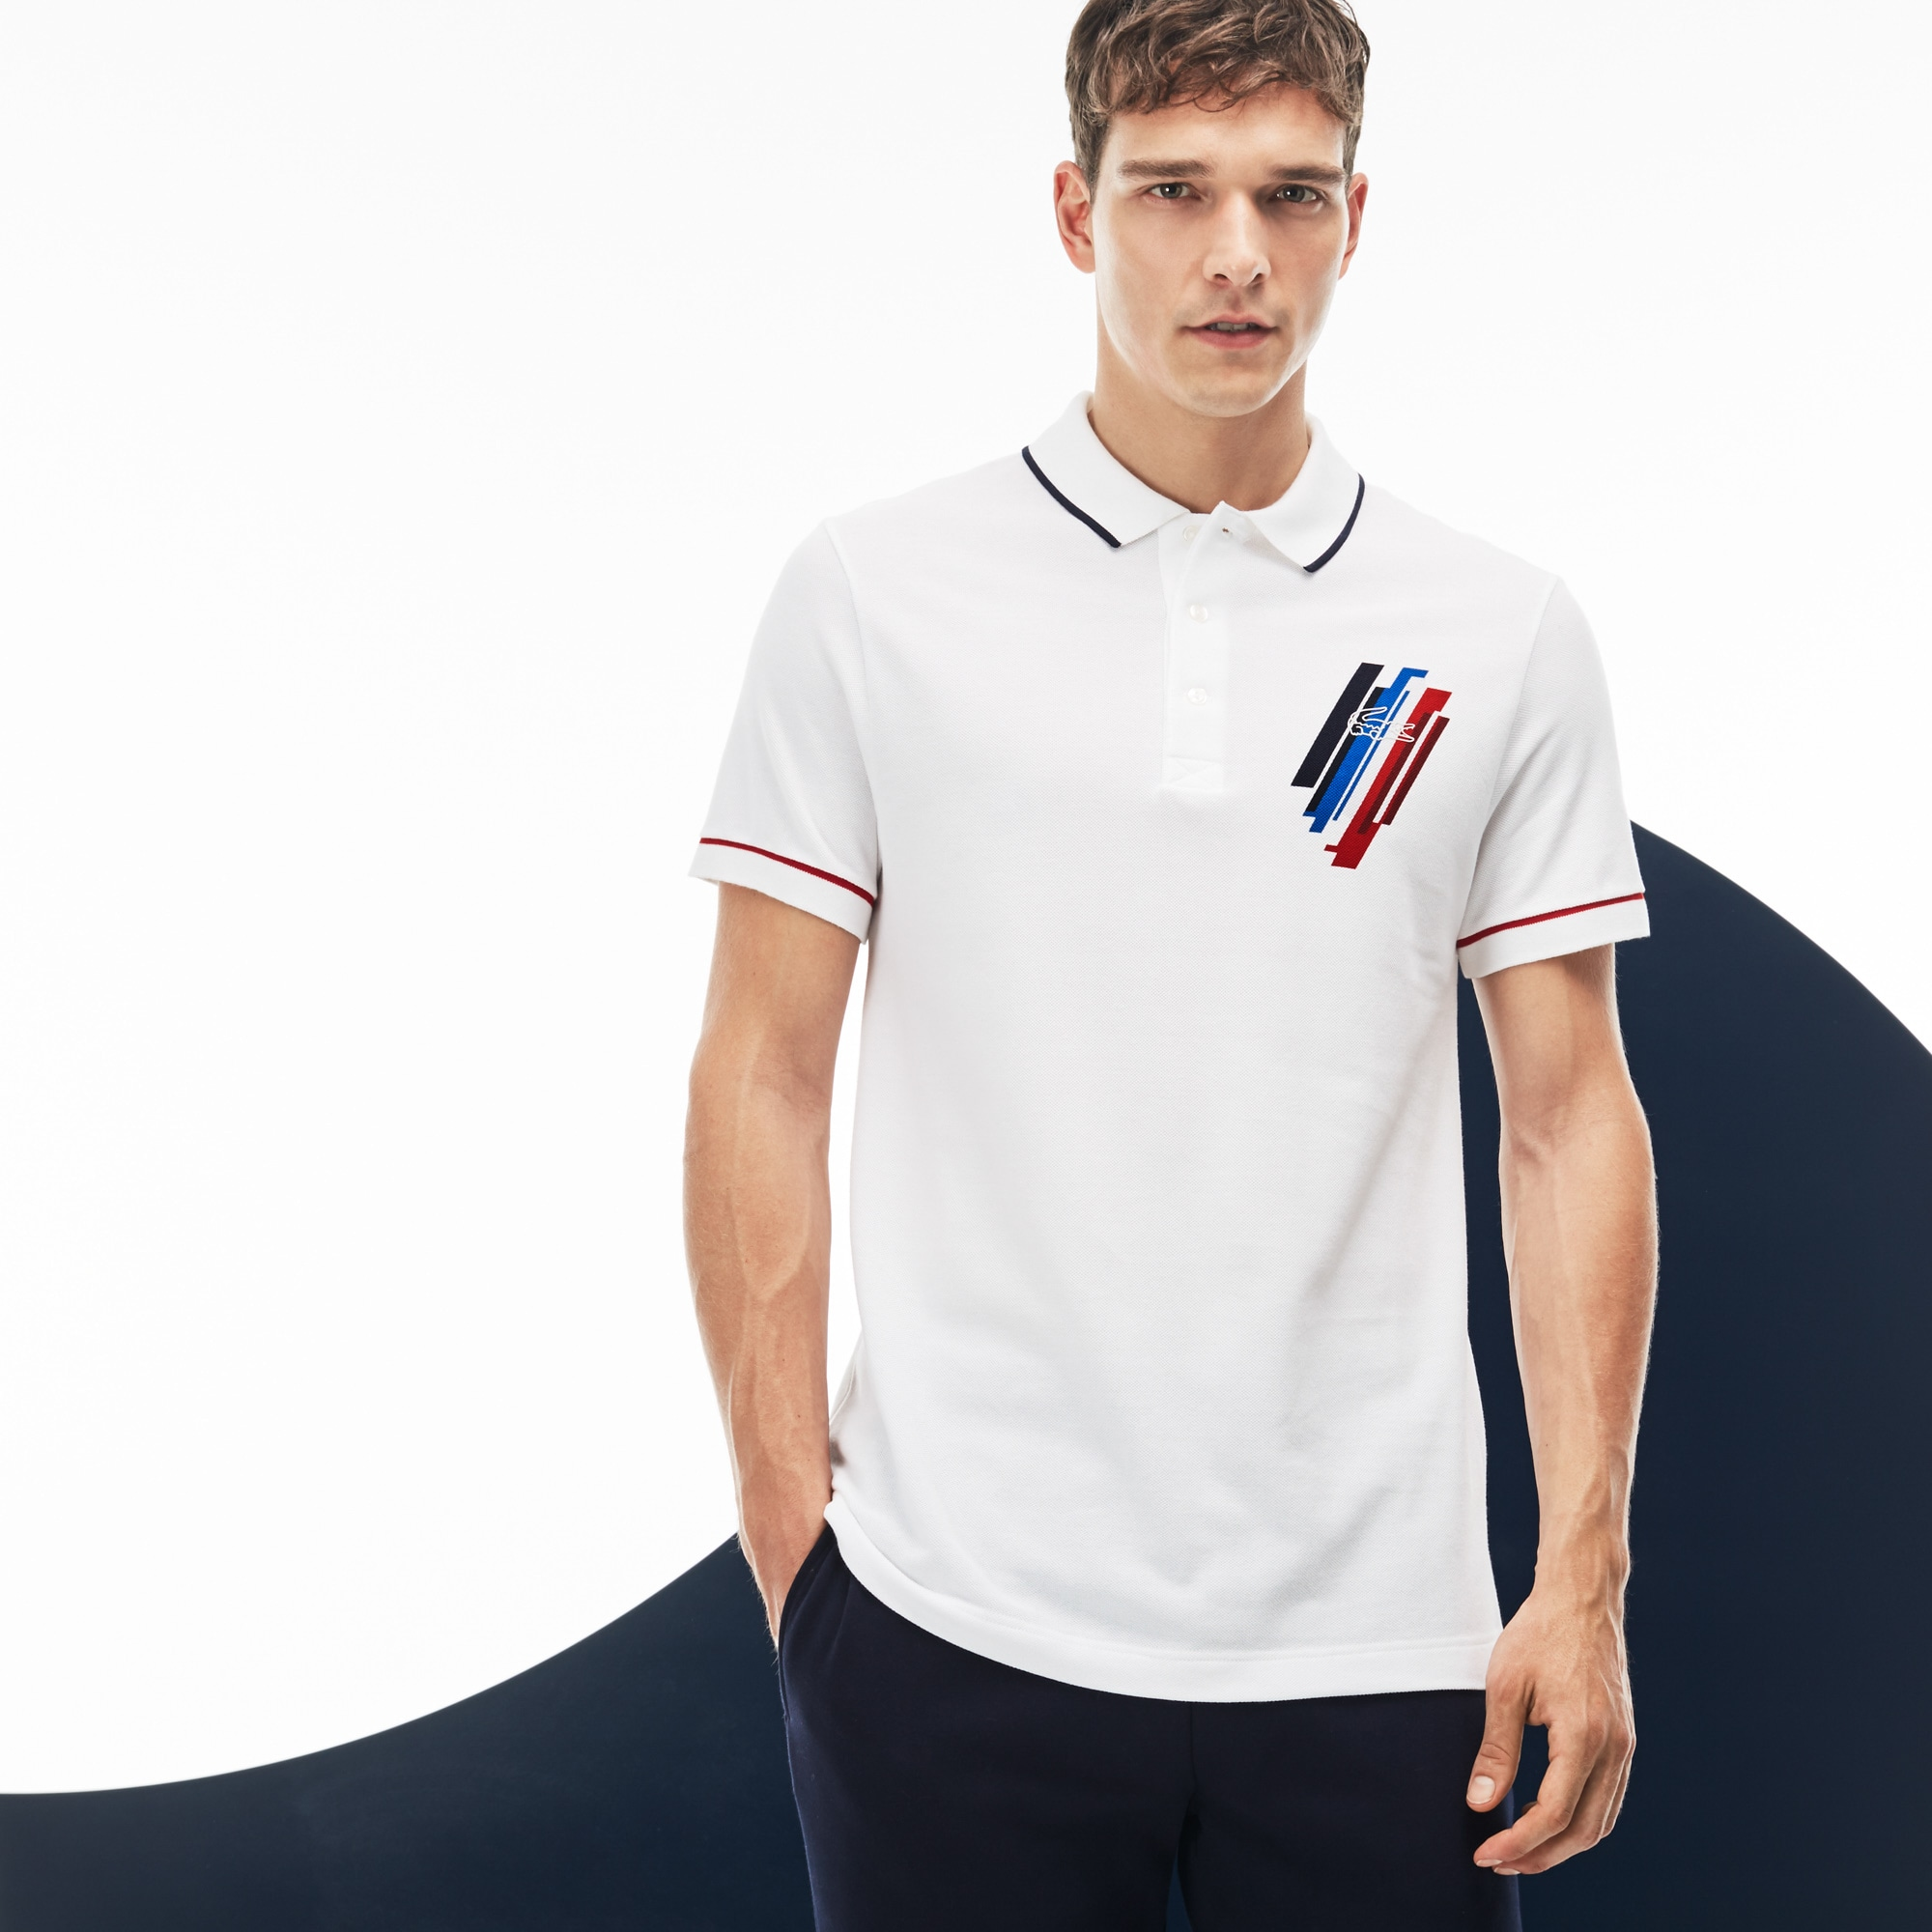 Men's Lacoste SPORT COLLECTION TRICOLORE Edition Design Two-Ply Petit Piqué Polo Shirt